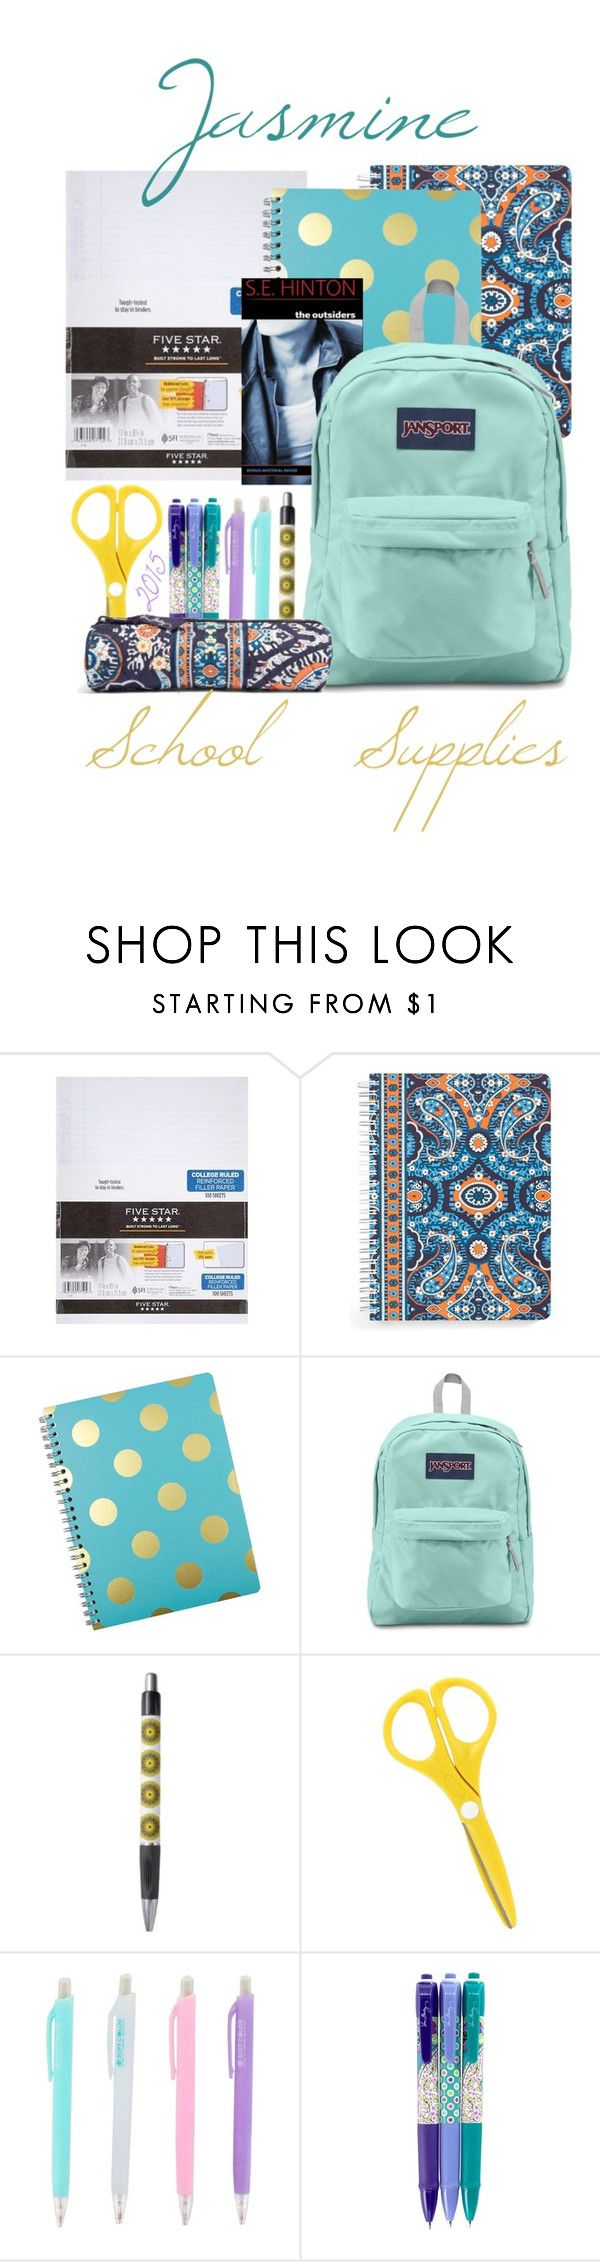 """""""Jasmine ~ School Supplies 2015"""" by snowj ❤ liked on Polyvore featuring interior, interiors, interior design, home, home decor, interior decorating, Mead, Vera Bradley and JanSport"""